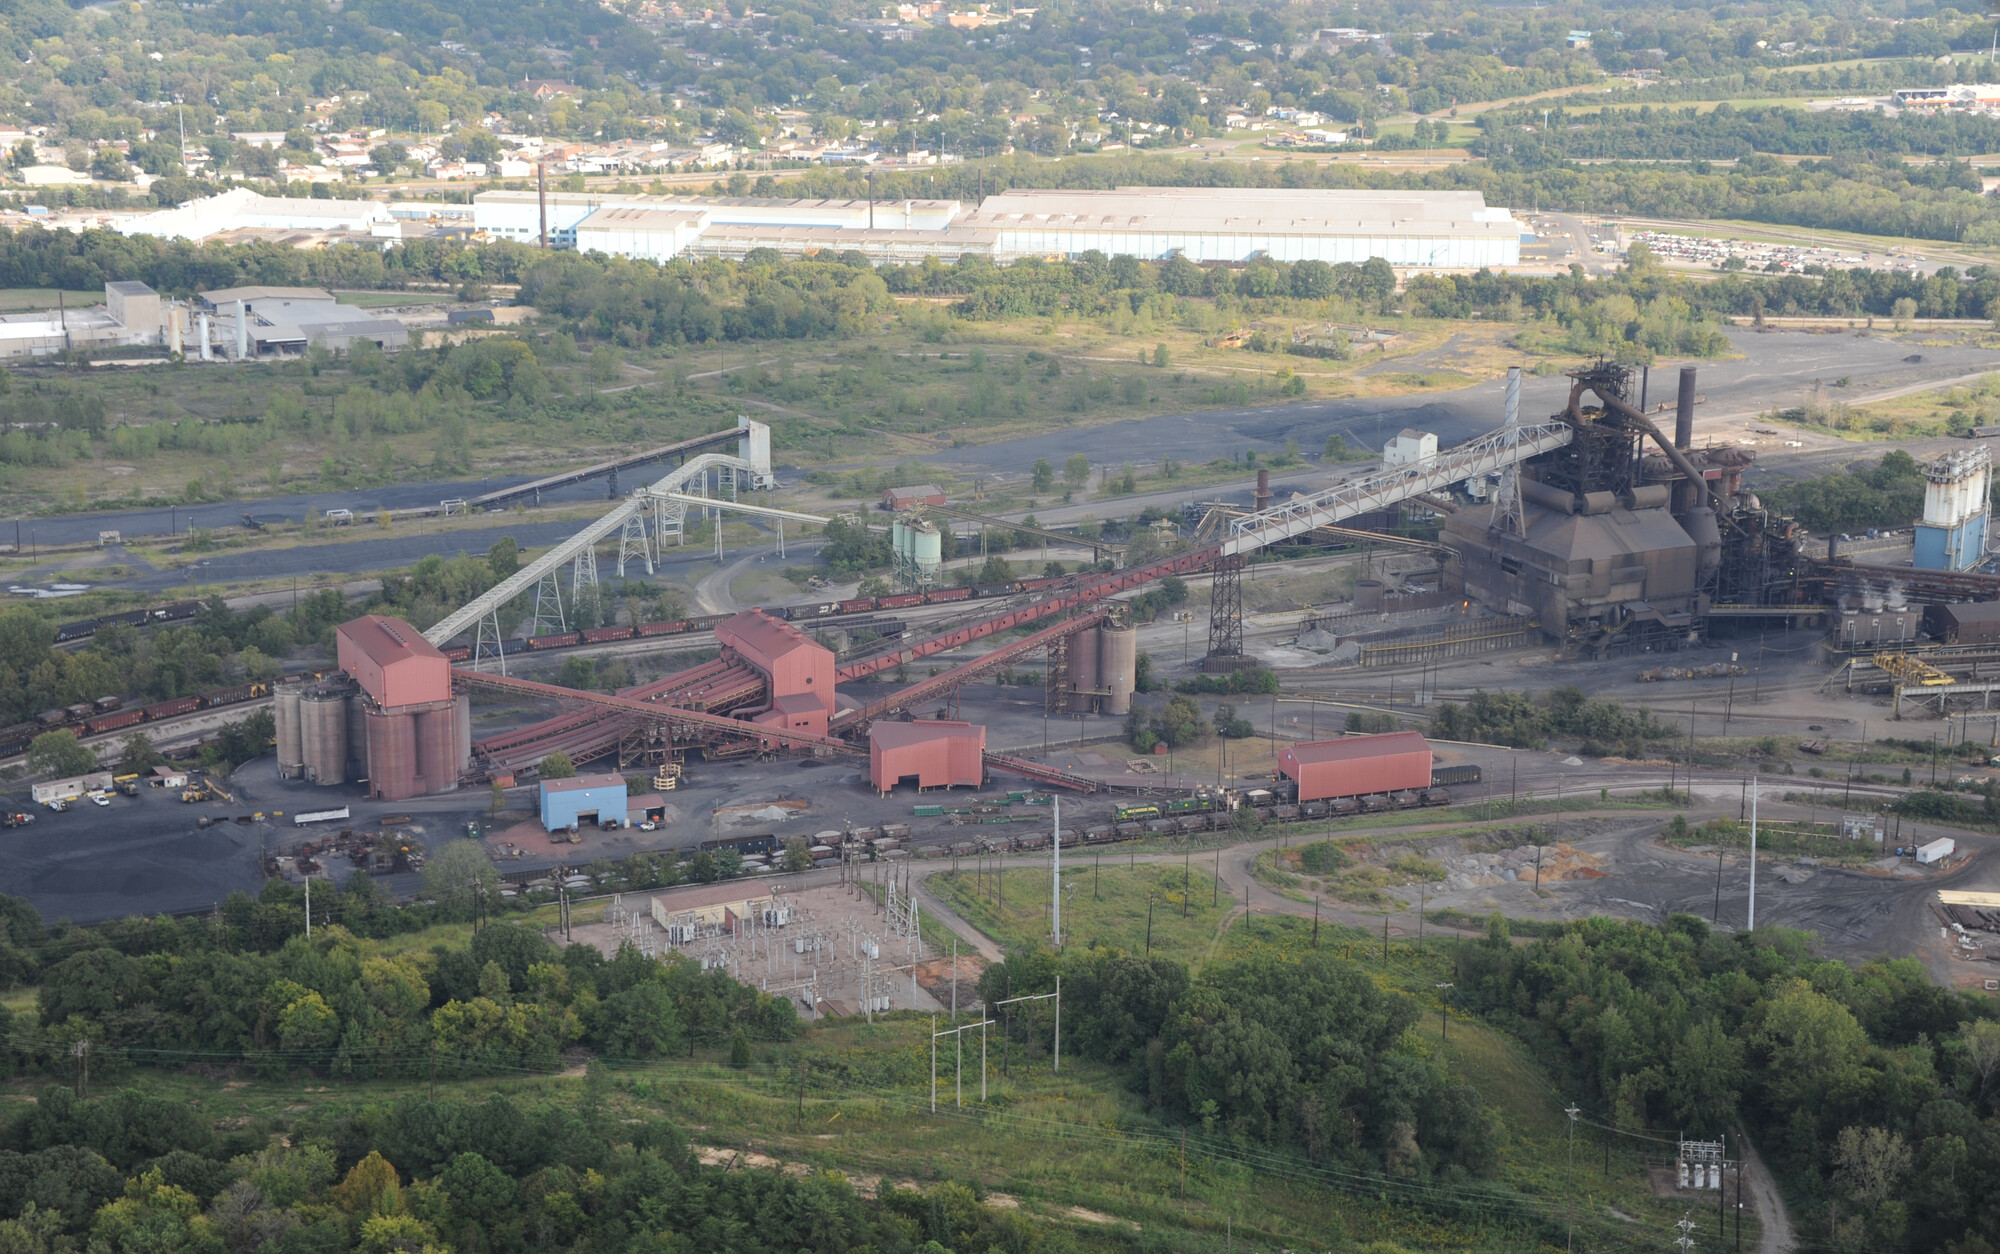 U S Steel S Fairfield Works Is The Largest Producer Of New Raw Steel In The Southeastern United States It Uses Iron Ore Taconite Pellets S Metal